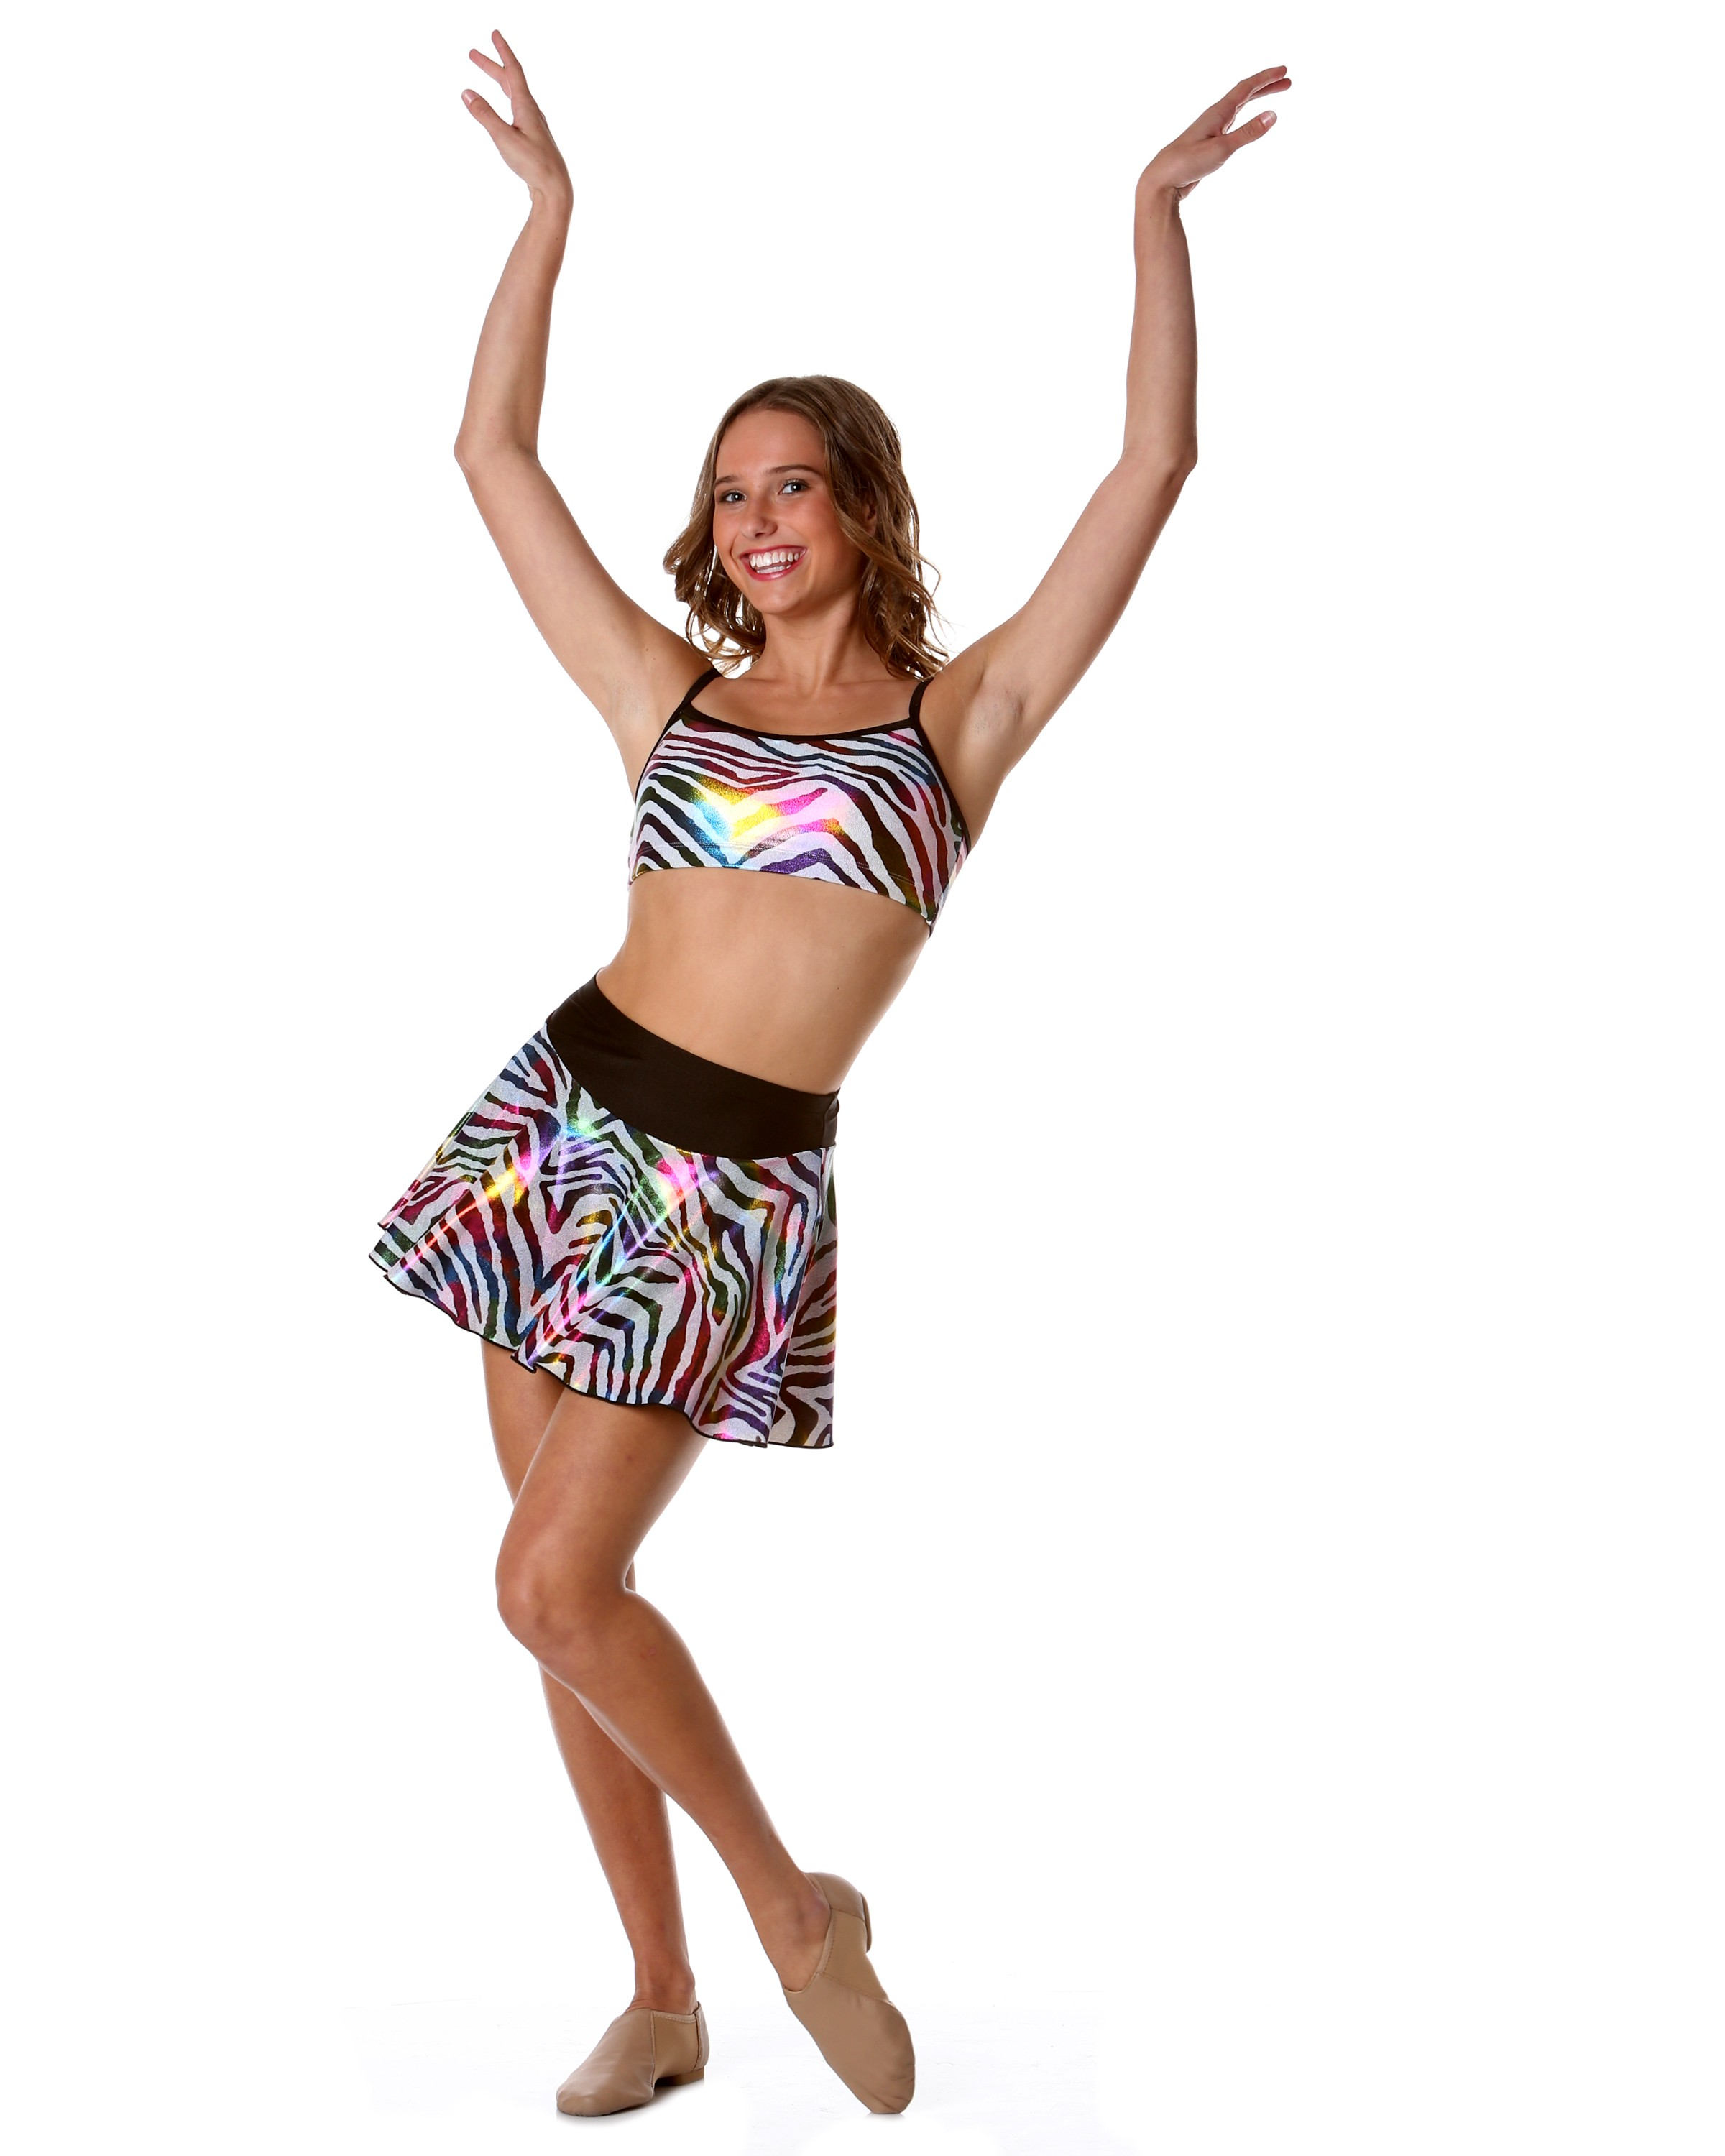 Studio 7 Safari Hot Skirt - Adults